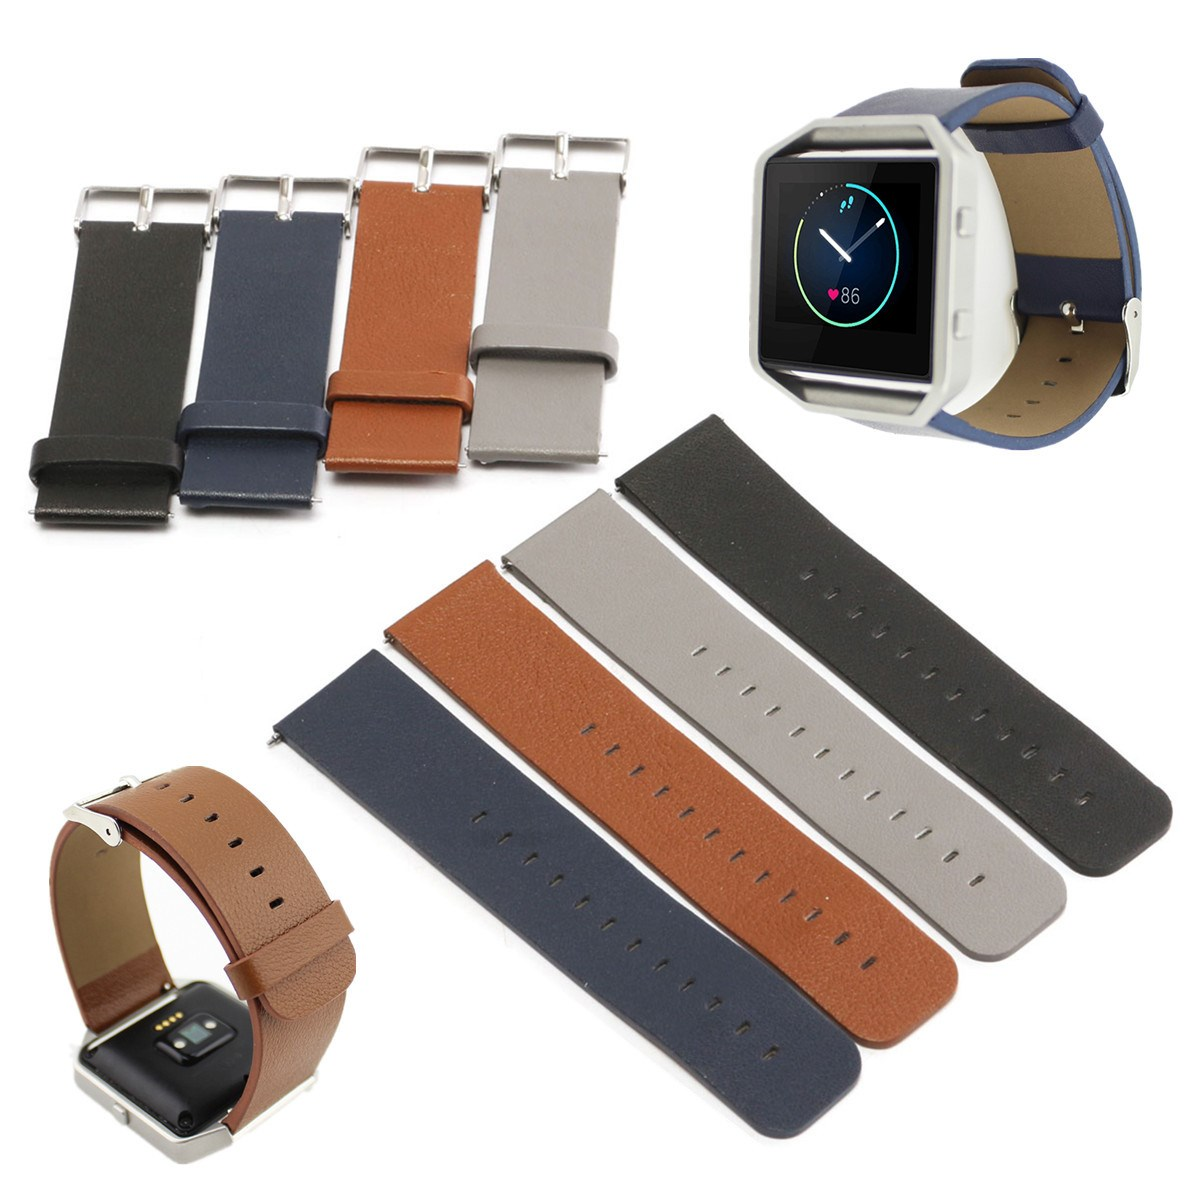 New Fitbit Blaze Strap Genuine PU Leather Loop Strap For Fitbit Blaze Tracker Smart Fitness Watch With Magnet Lock Strap special 1ch rf wireless remote control switch system 1 transmitter